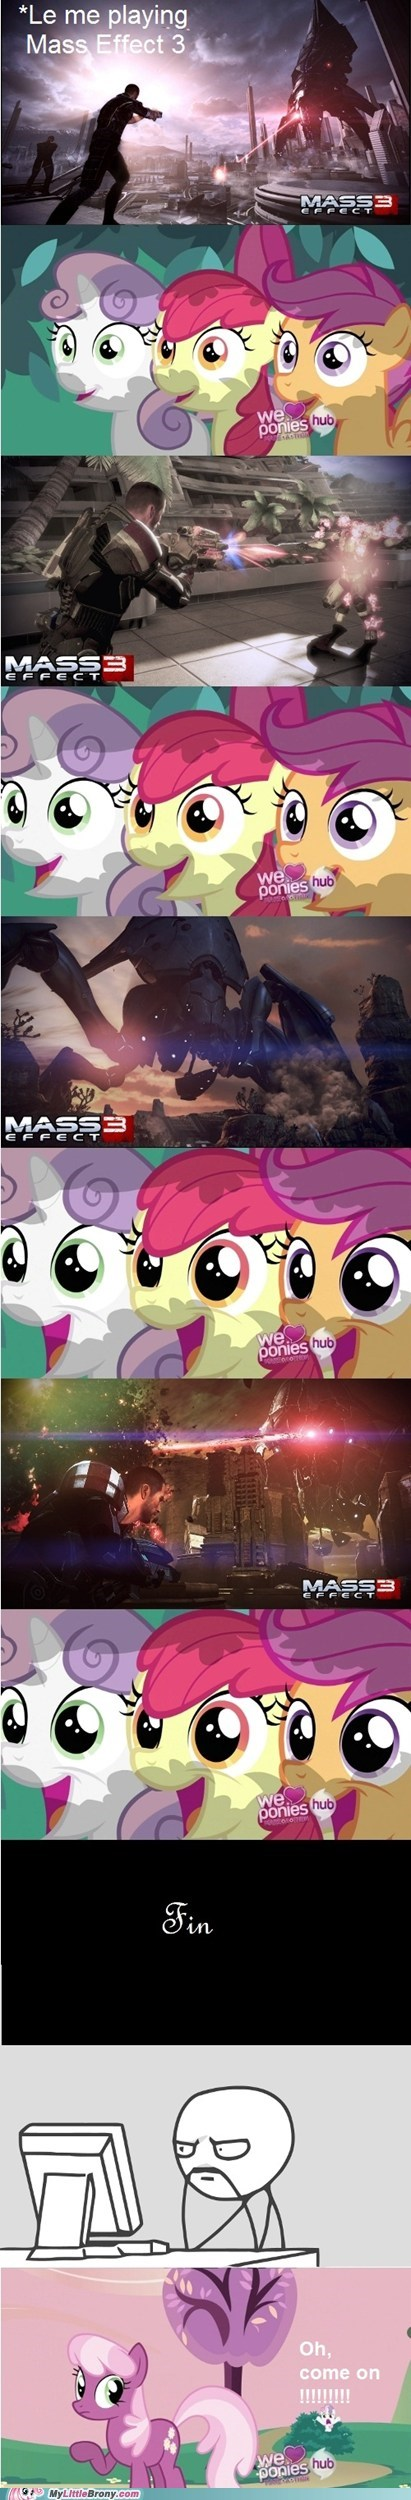 Mass Effect 3 Reactions